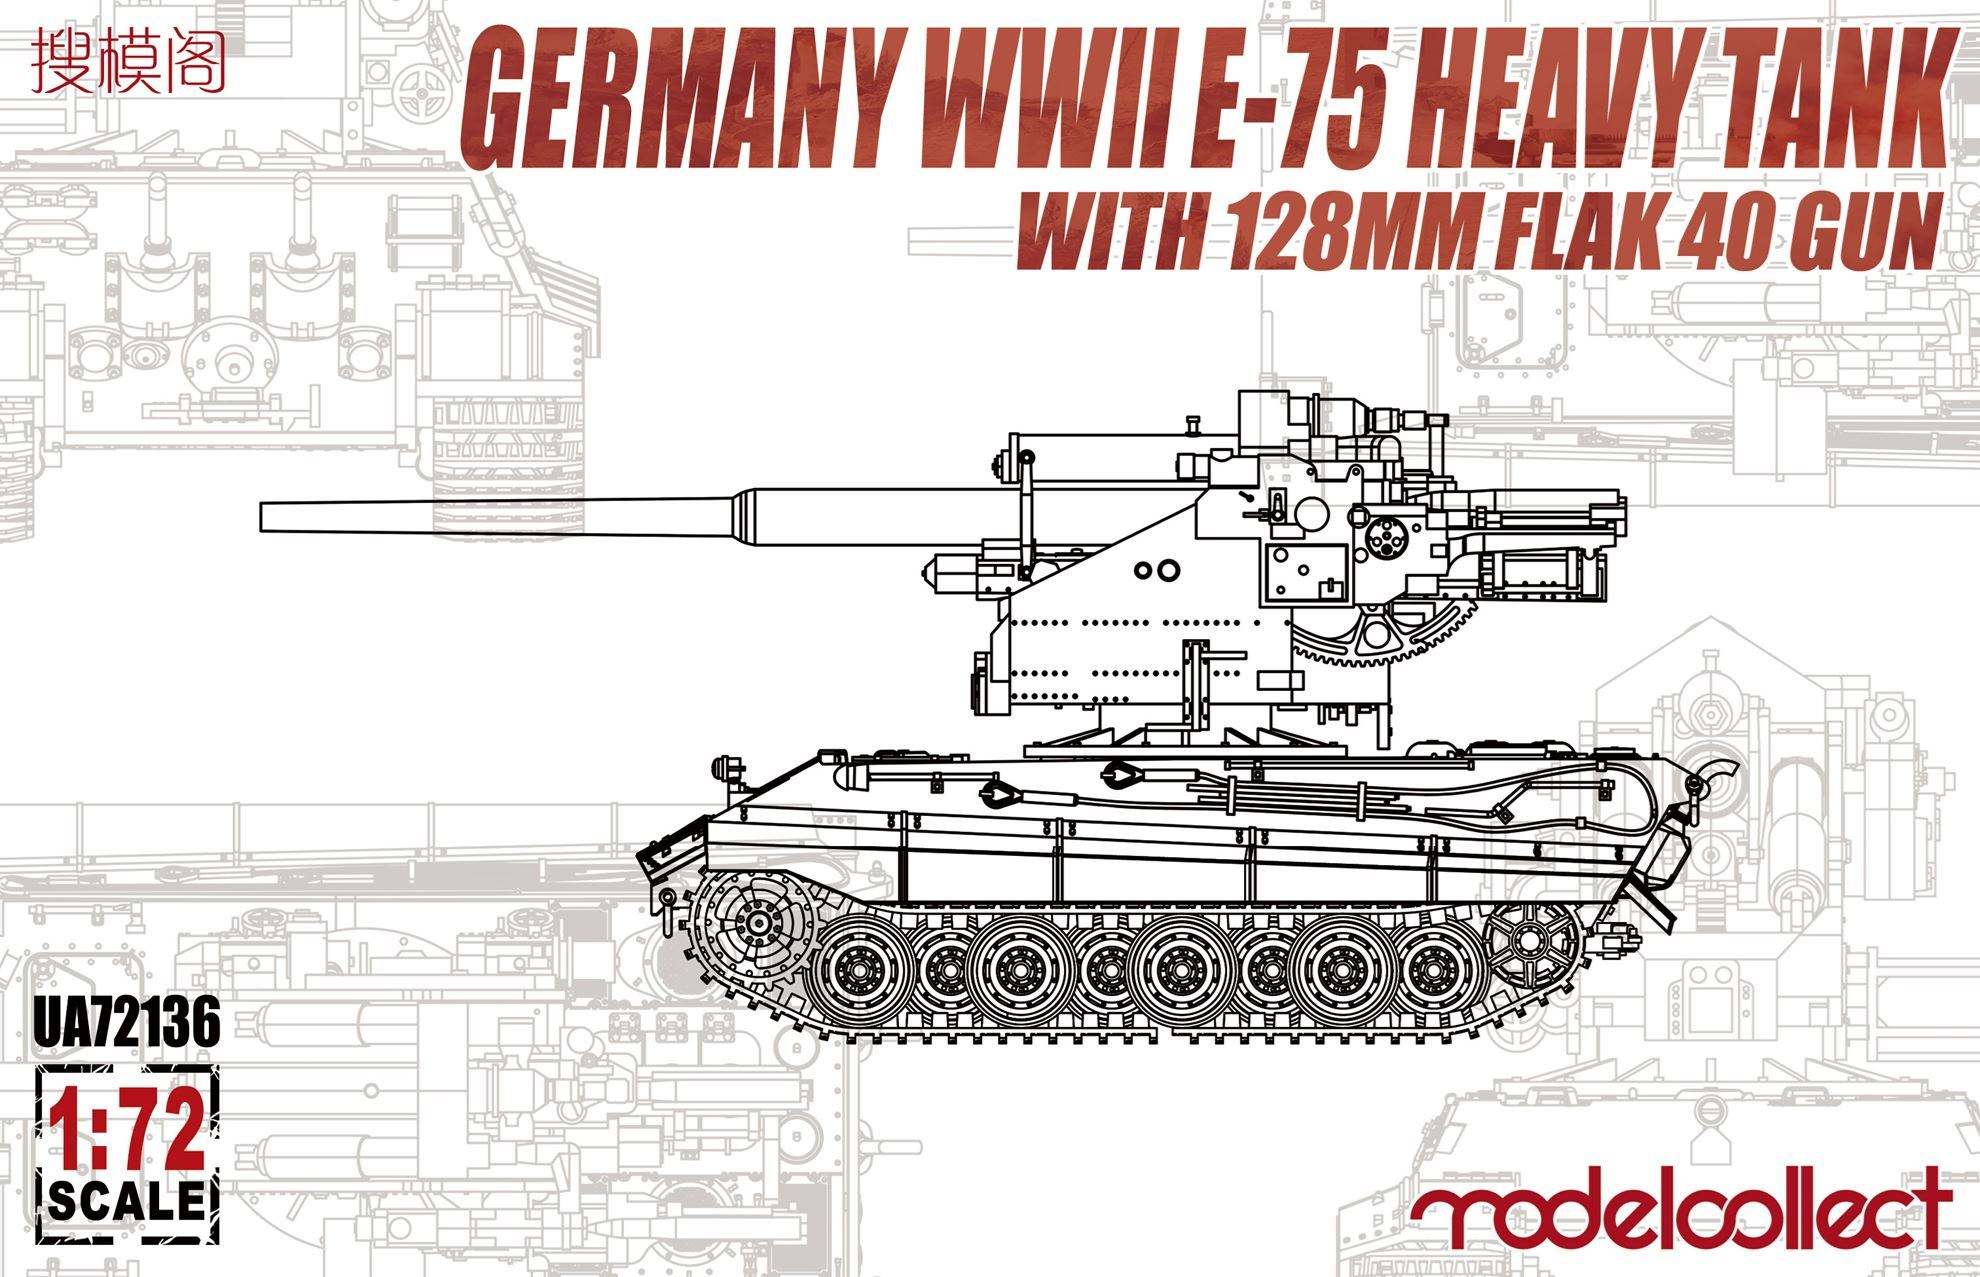 ModelCollect German WWII E-75 Heavy Tank with 128mm flak 40 gun